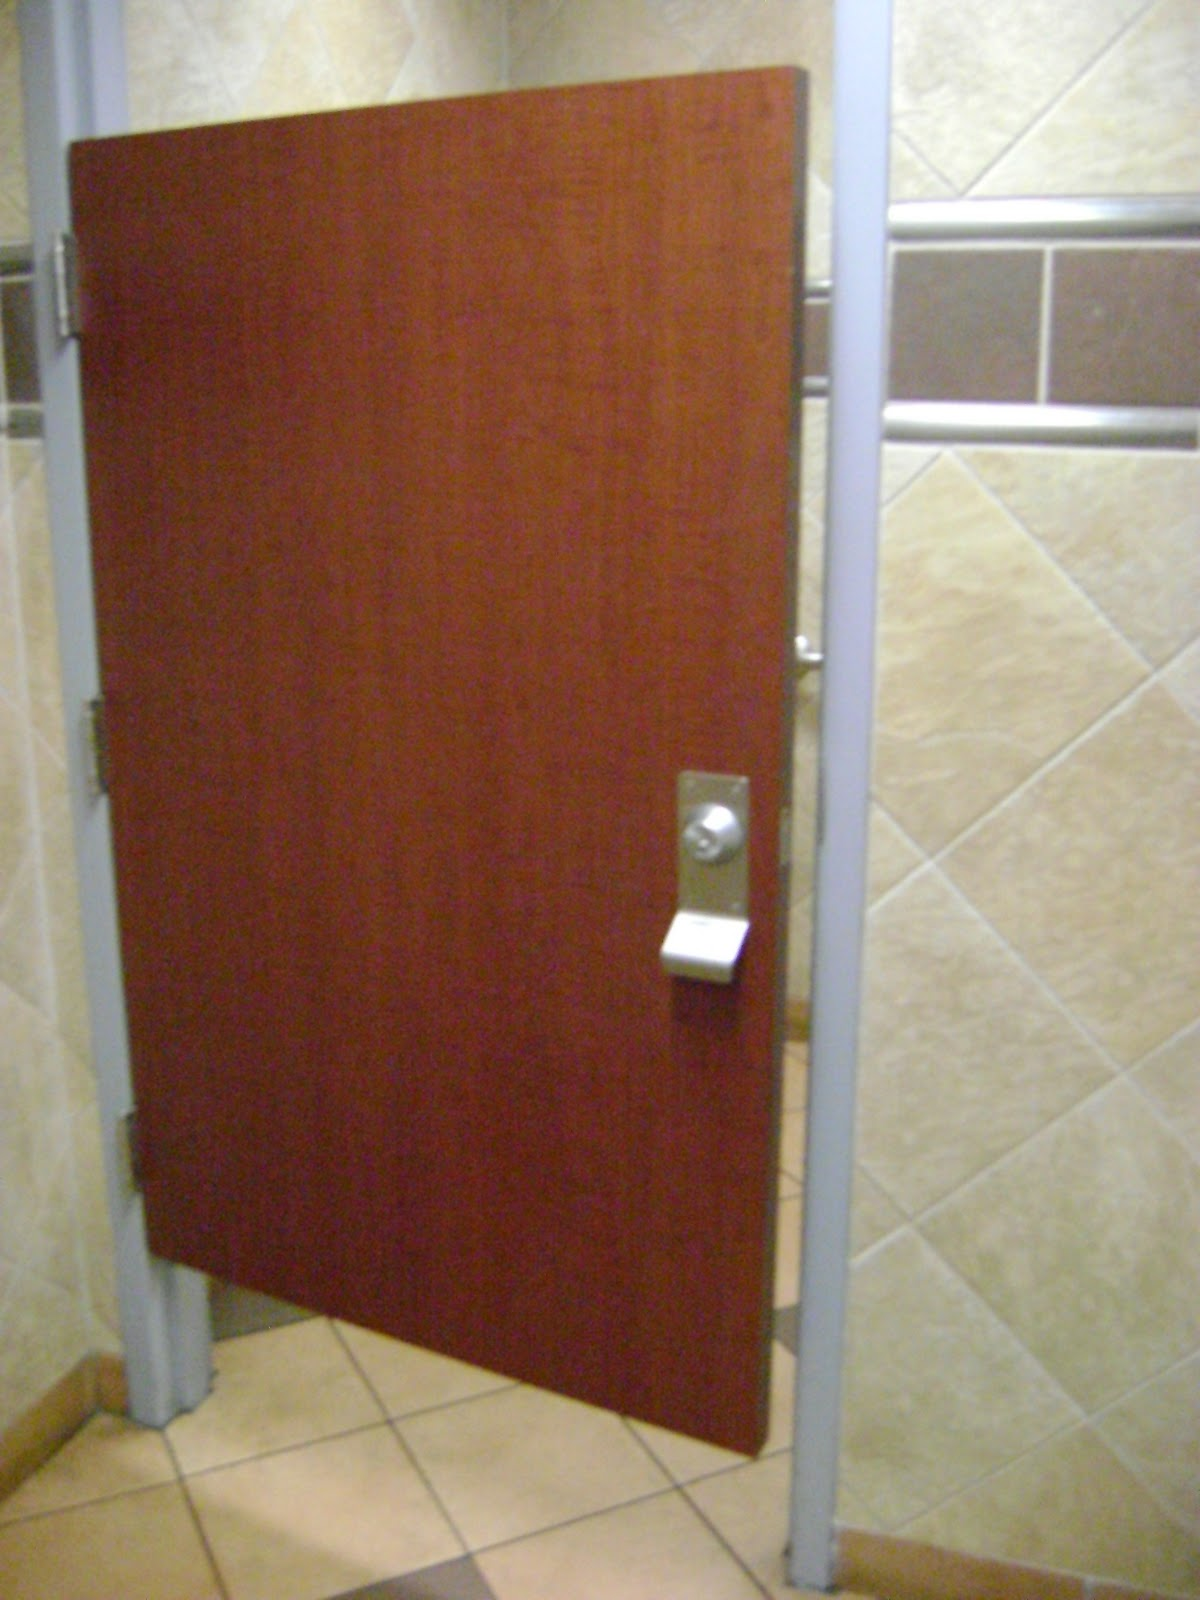 Bathroom Stall Doors Hardware Innovative Purple Bathroom Stall - Wooden bathroom stall doors